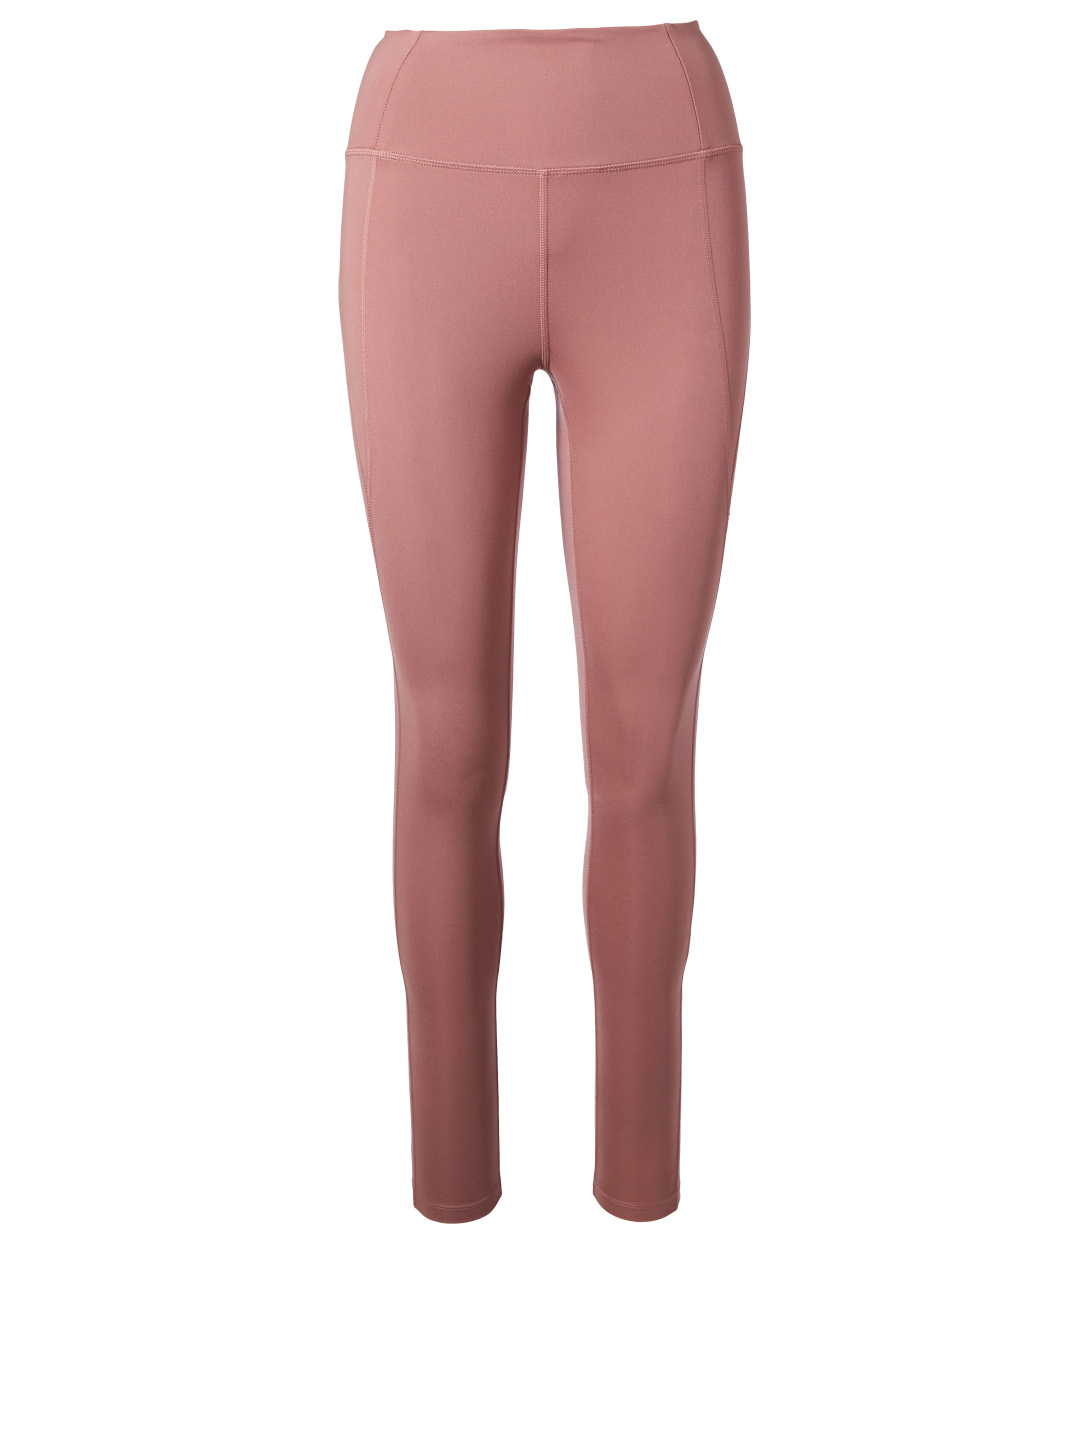 GIRLFRIEND COLLECTIVE Compressive High-Rise Legging H Project Pink